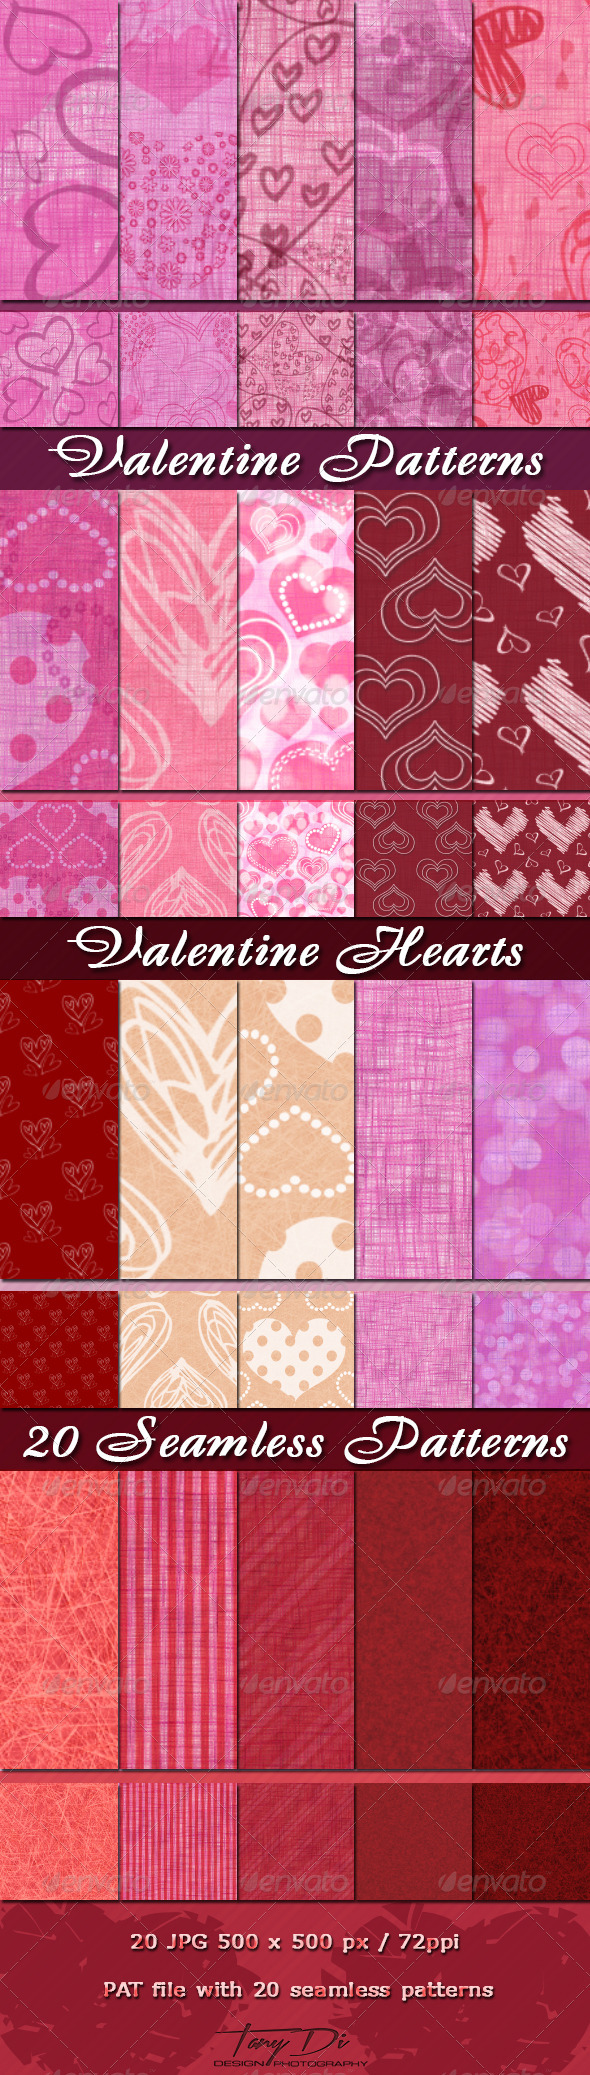 GraphicRiver Valentine Patterns 3866801